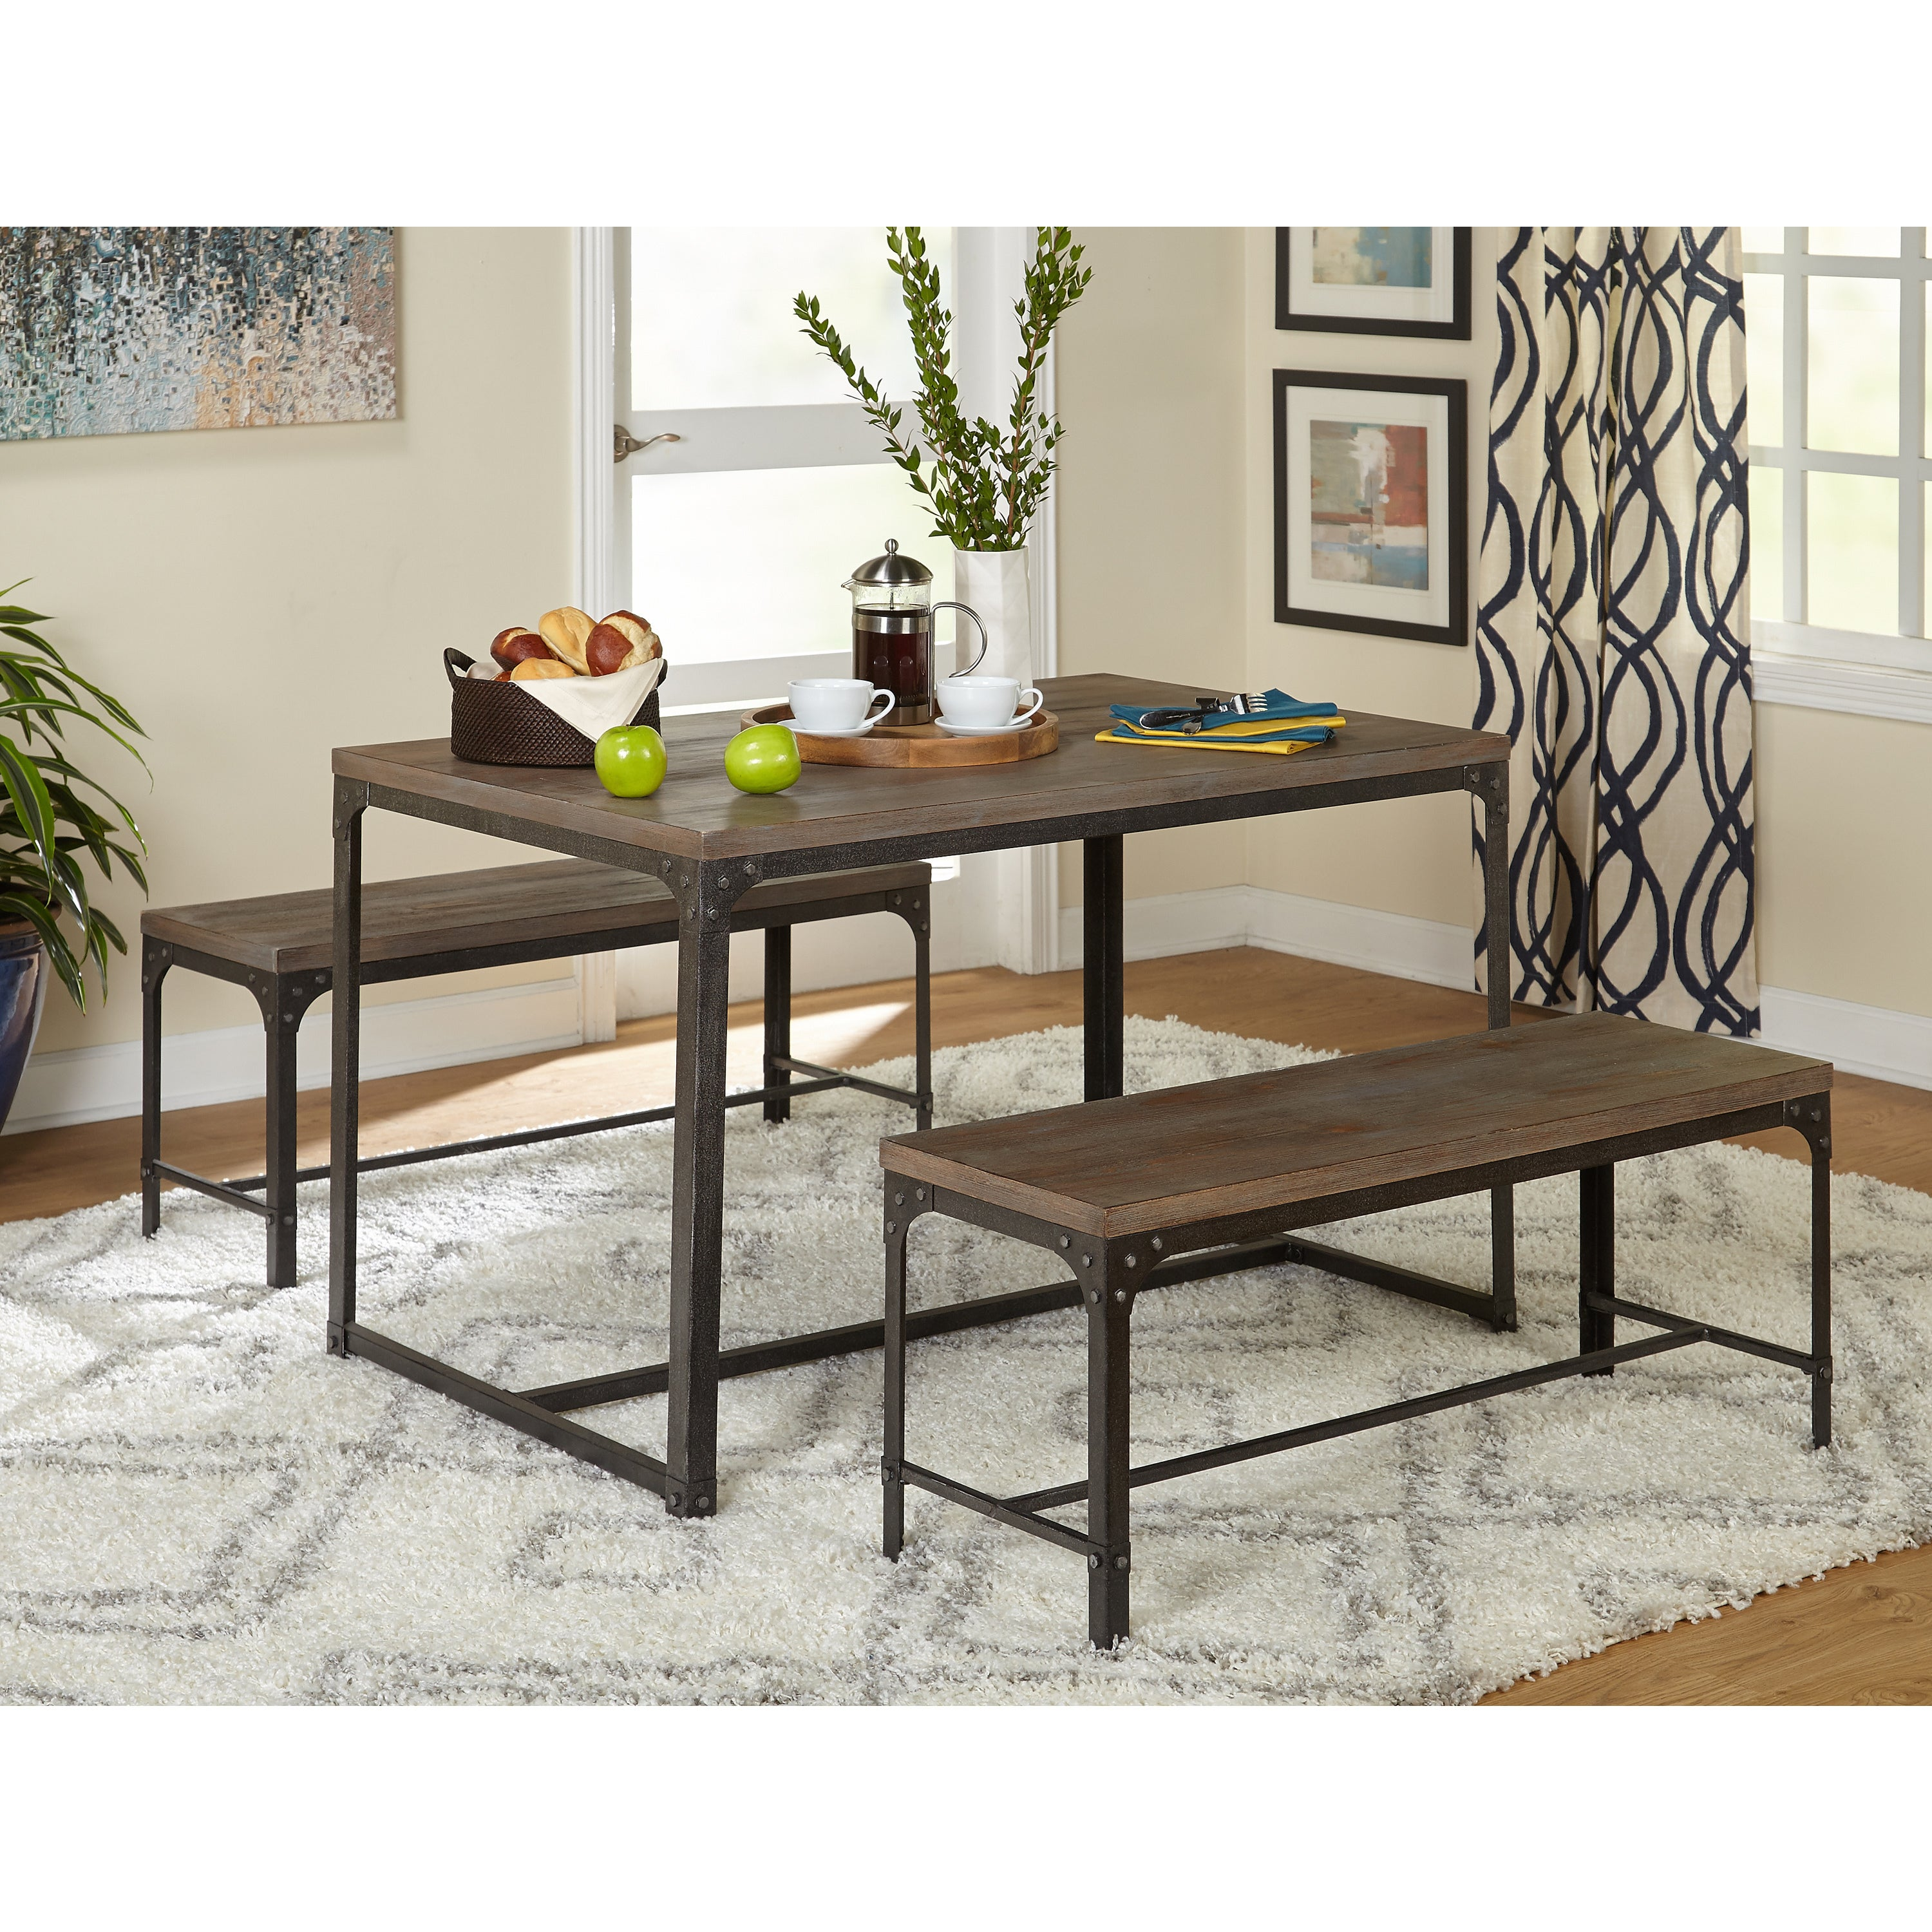 Wondrous Simple Living 3Pc Scholar Vintage Industrial Table And Dining Bench Set Ibusinesslaw Wood Chair Design Ideas Ibusinesslaworg